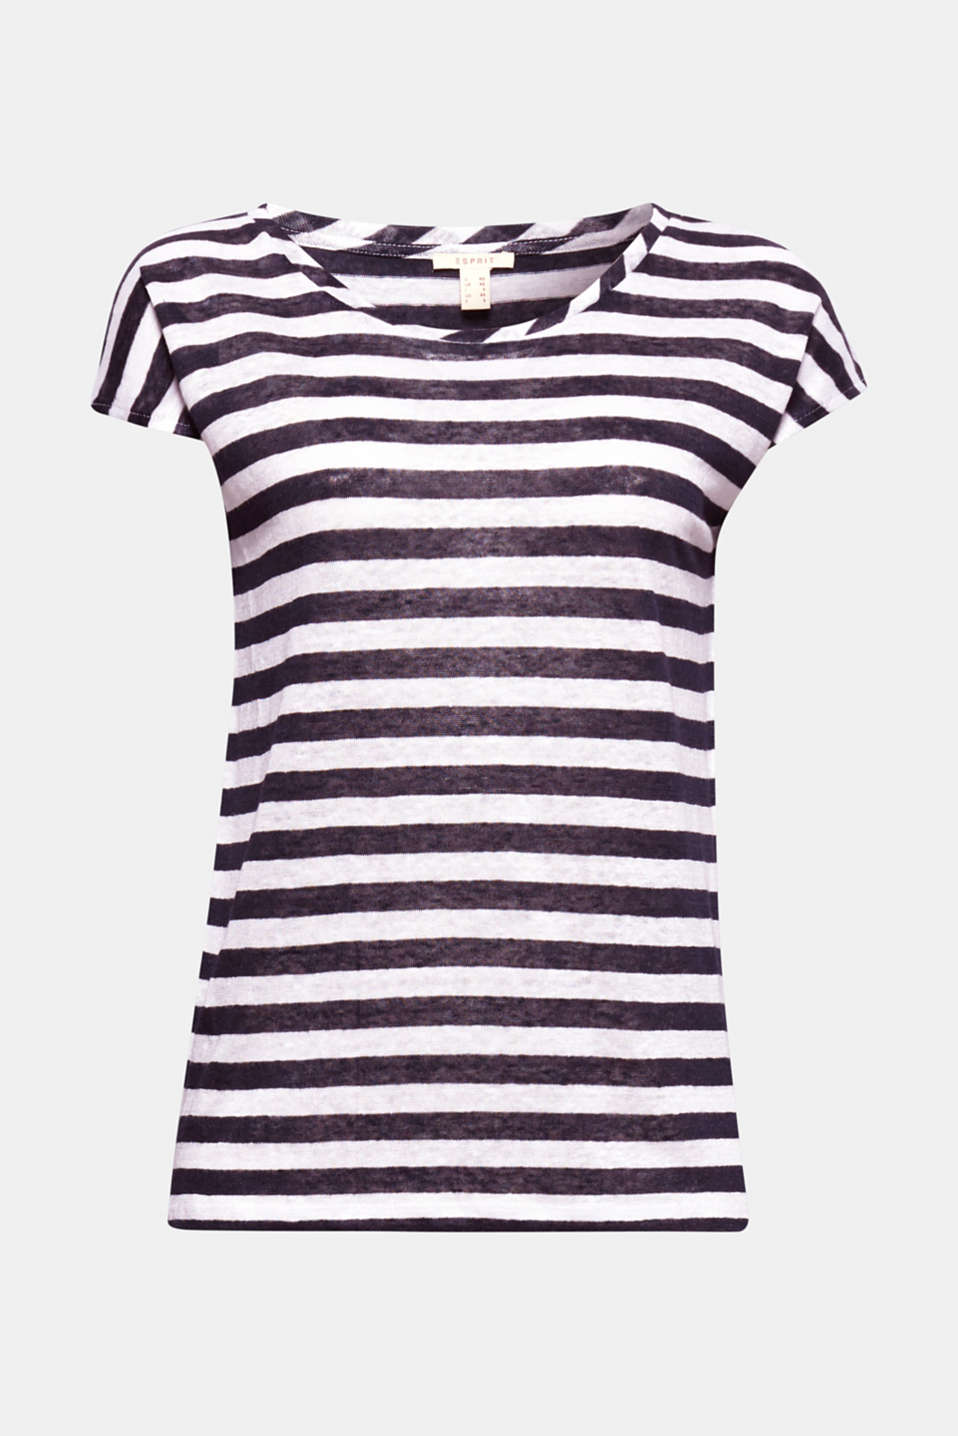 This casual, cool linen T-shirt with nautical stripes feels delicate and light against the skin!